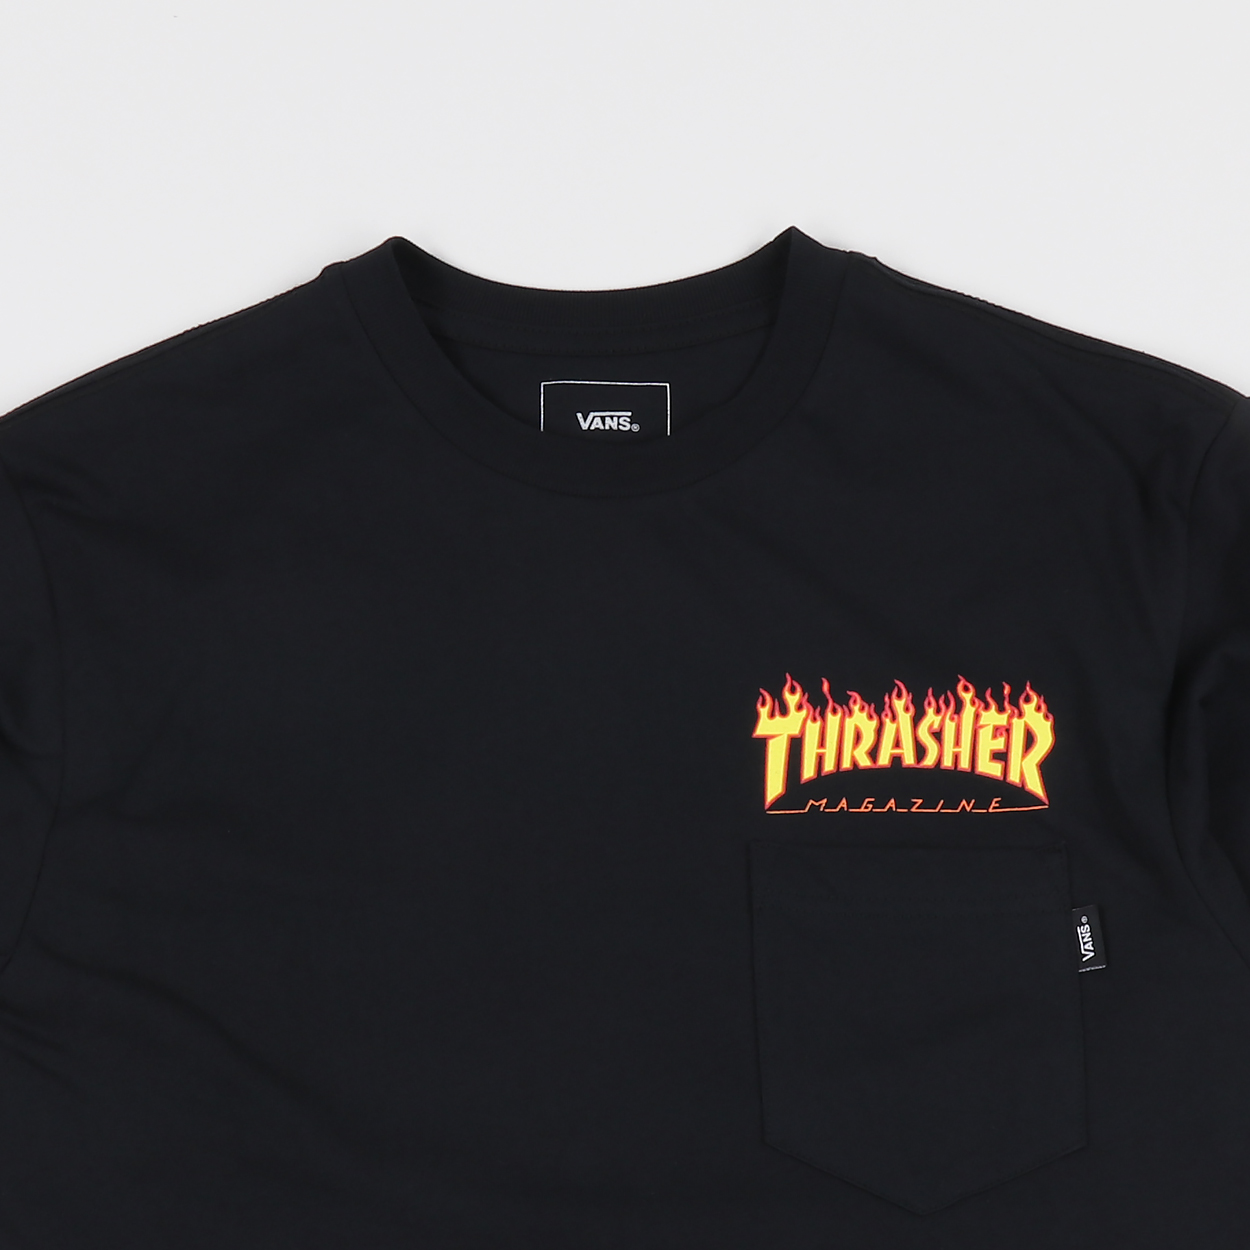 cba639aa067 The two skate behemoths which are Vans and Thrasher have colaborated to bring  us all a tasty selection of threads. This pocket tee features original  colab ...